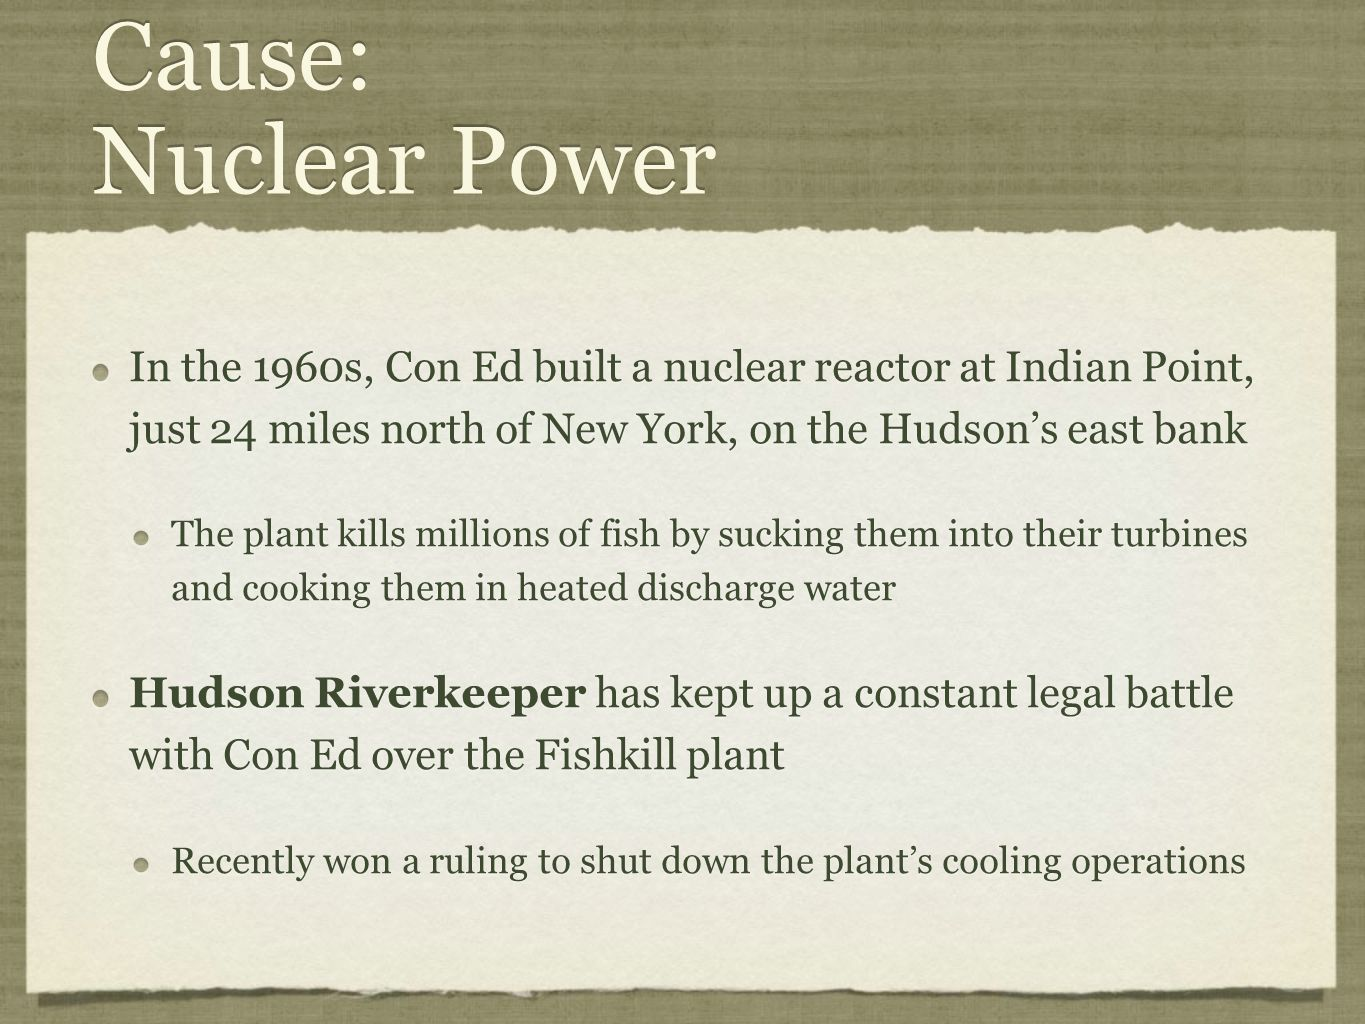 Cause: Nuclear Power In the 1960s, Con Ed built a nuclear reactor at Indian Point, just 24 miles north of New York, on the Hudson's east bank The plan